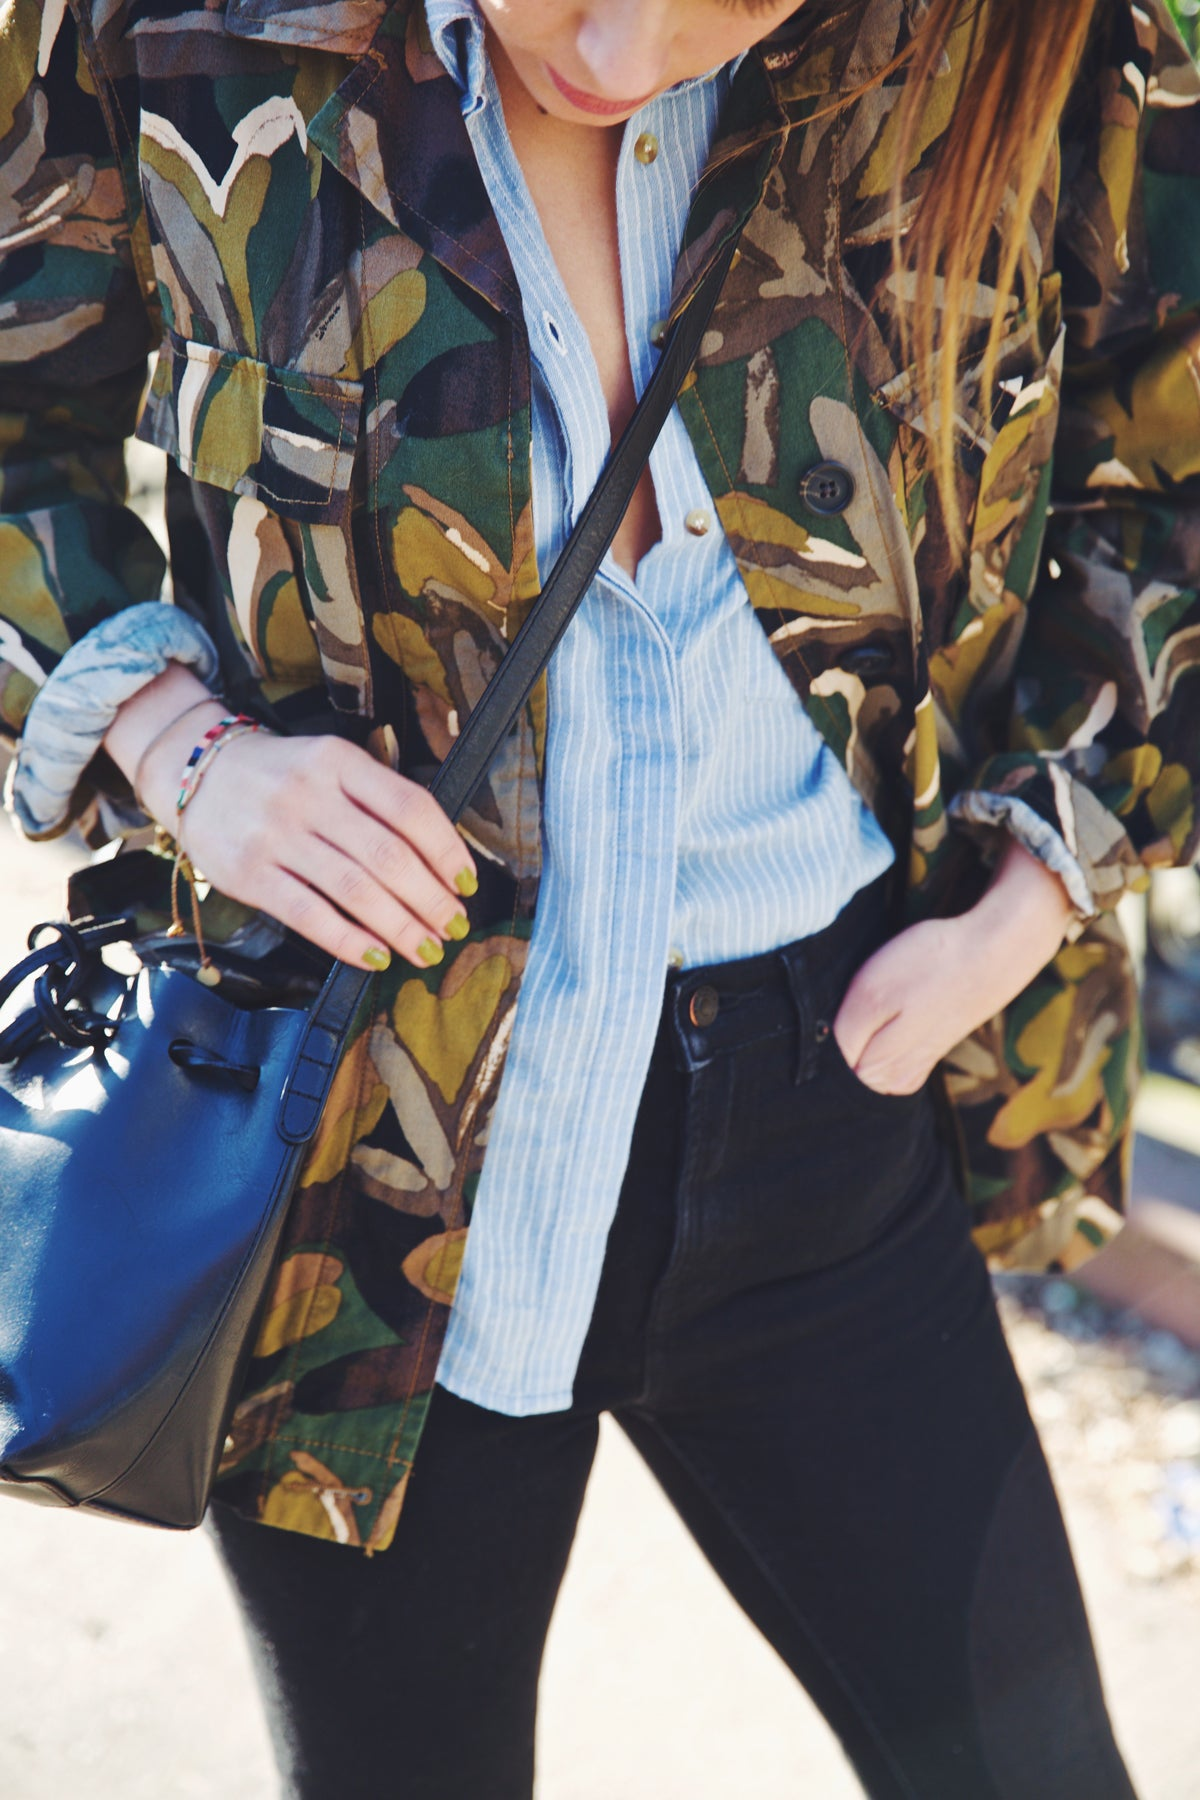 girl wearing camouflage jacket over blue and white striped shirt  with black jeans and black handbag